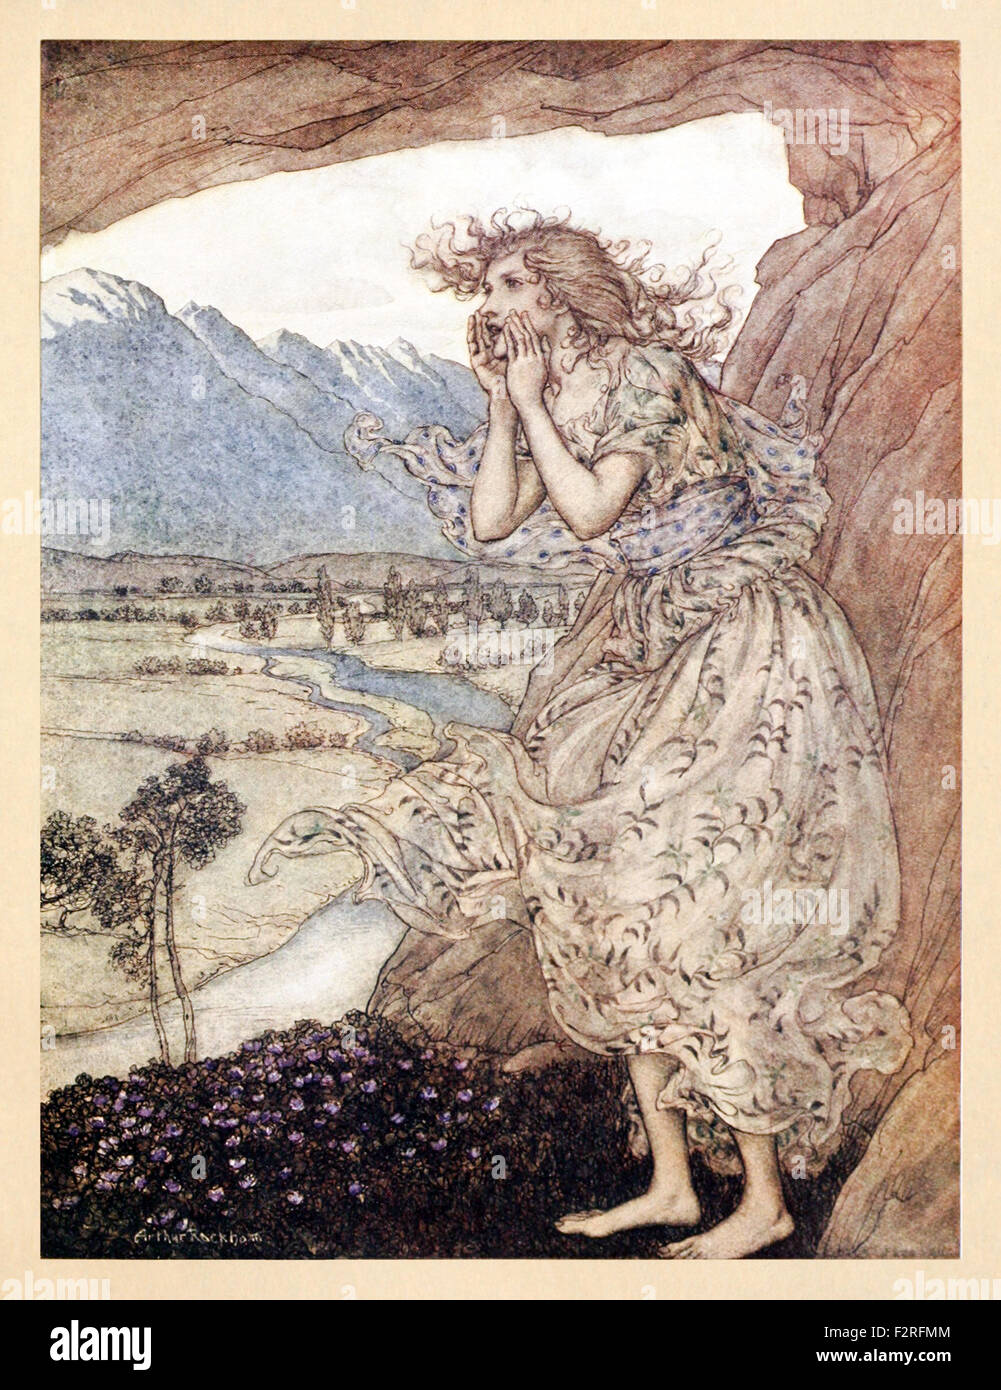 'Sweet Echo' from 'Comus' by John Milton, illustration by Arthur Rackham (1867-1939). See description for more information. Stock Photo